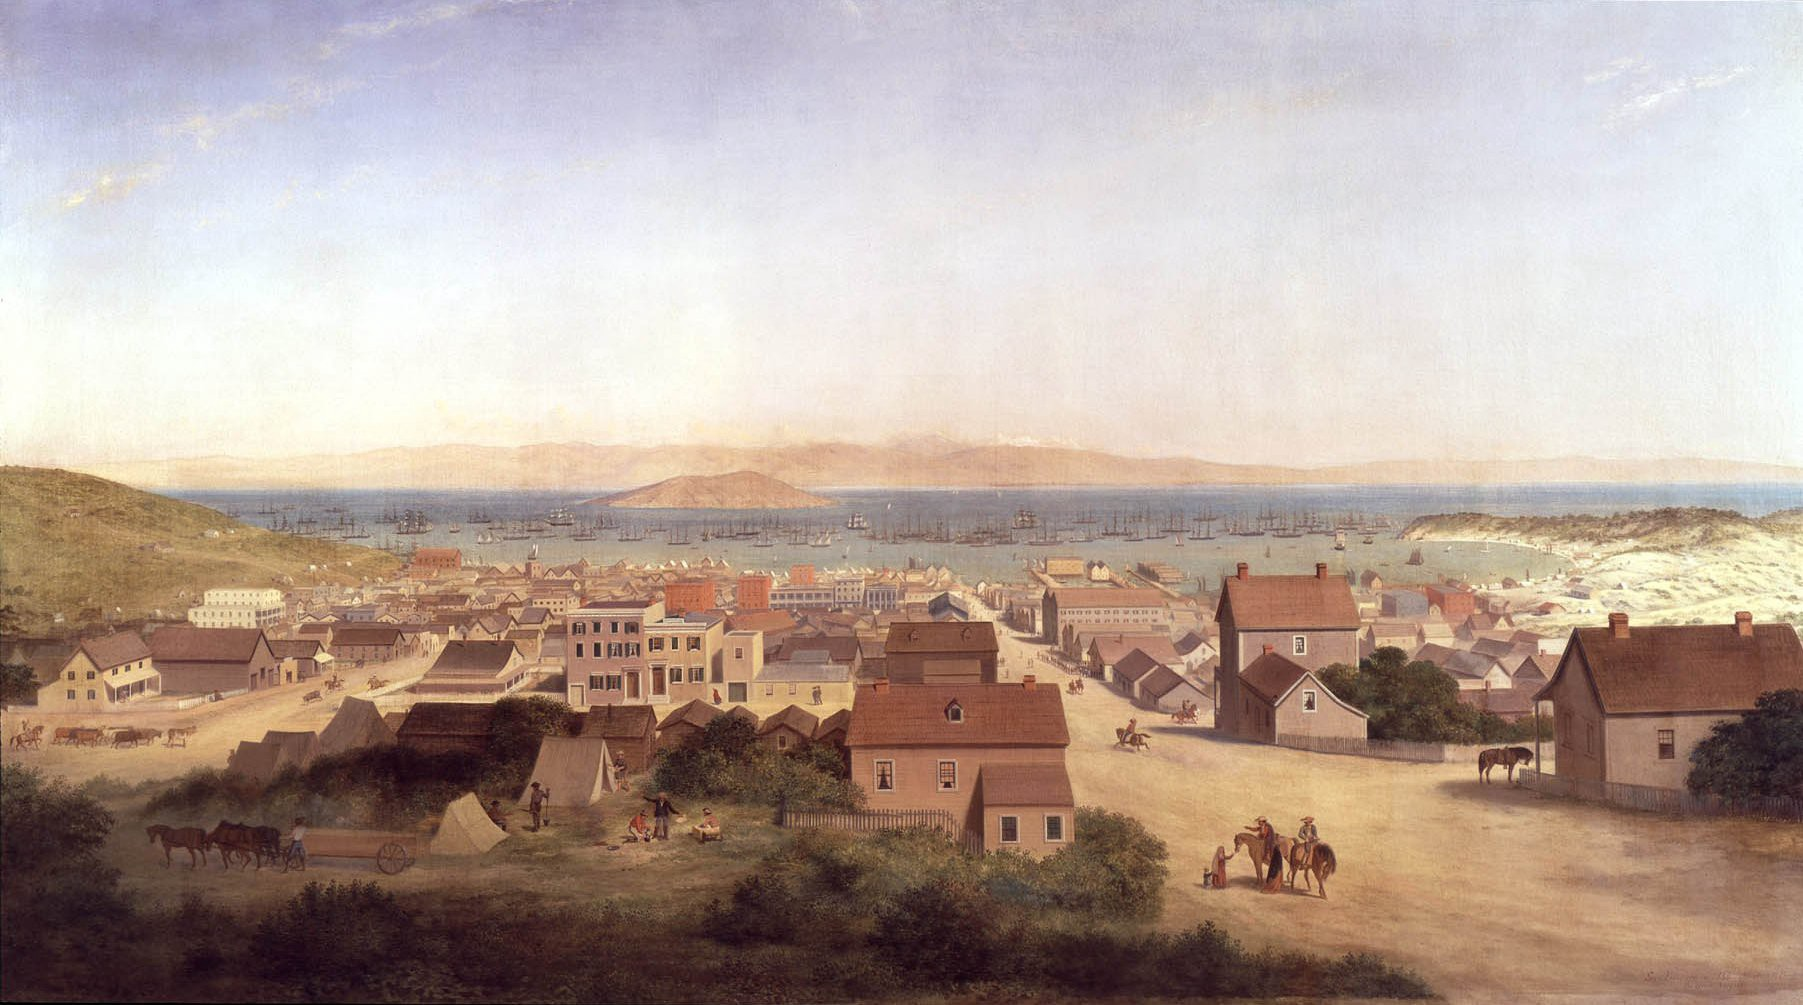 View of San Francisco in 1850', 1878, oil on canvas painting by George Henry Burgess, 1878, houses, dirt paths and harbor